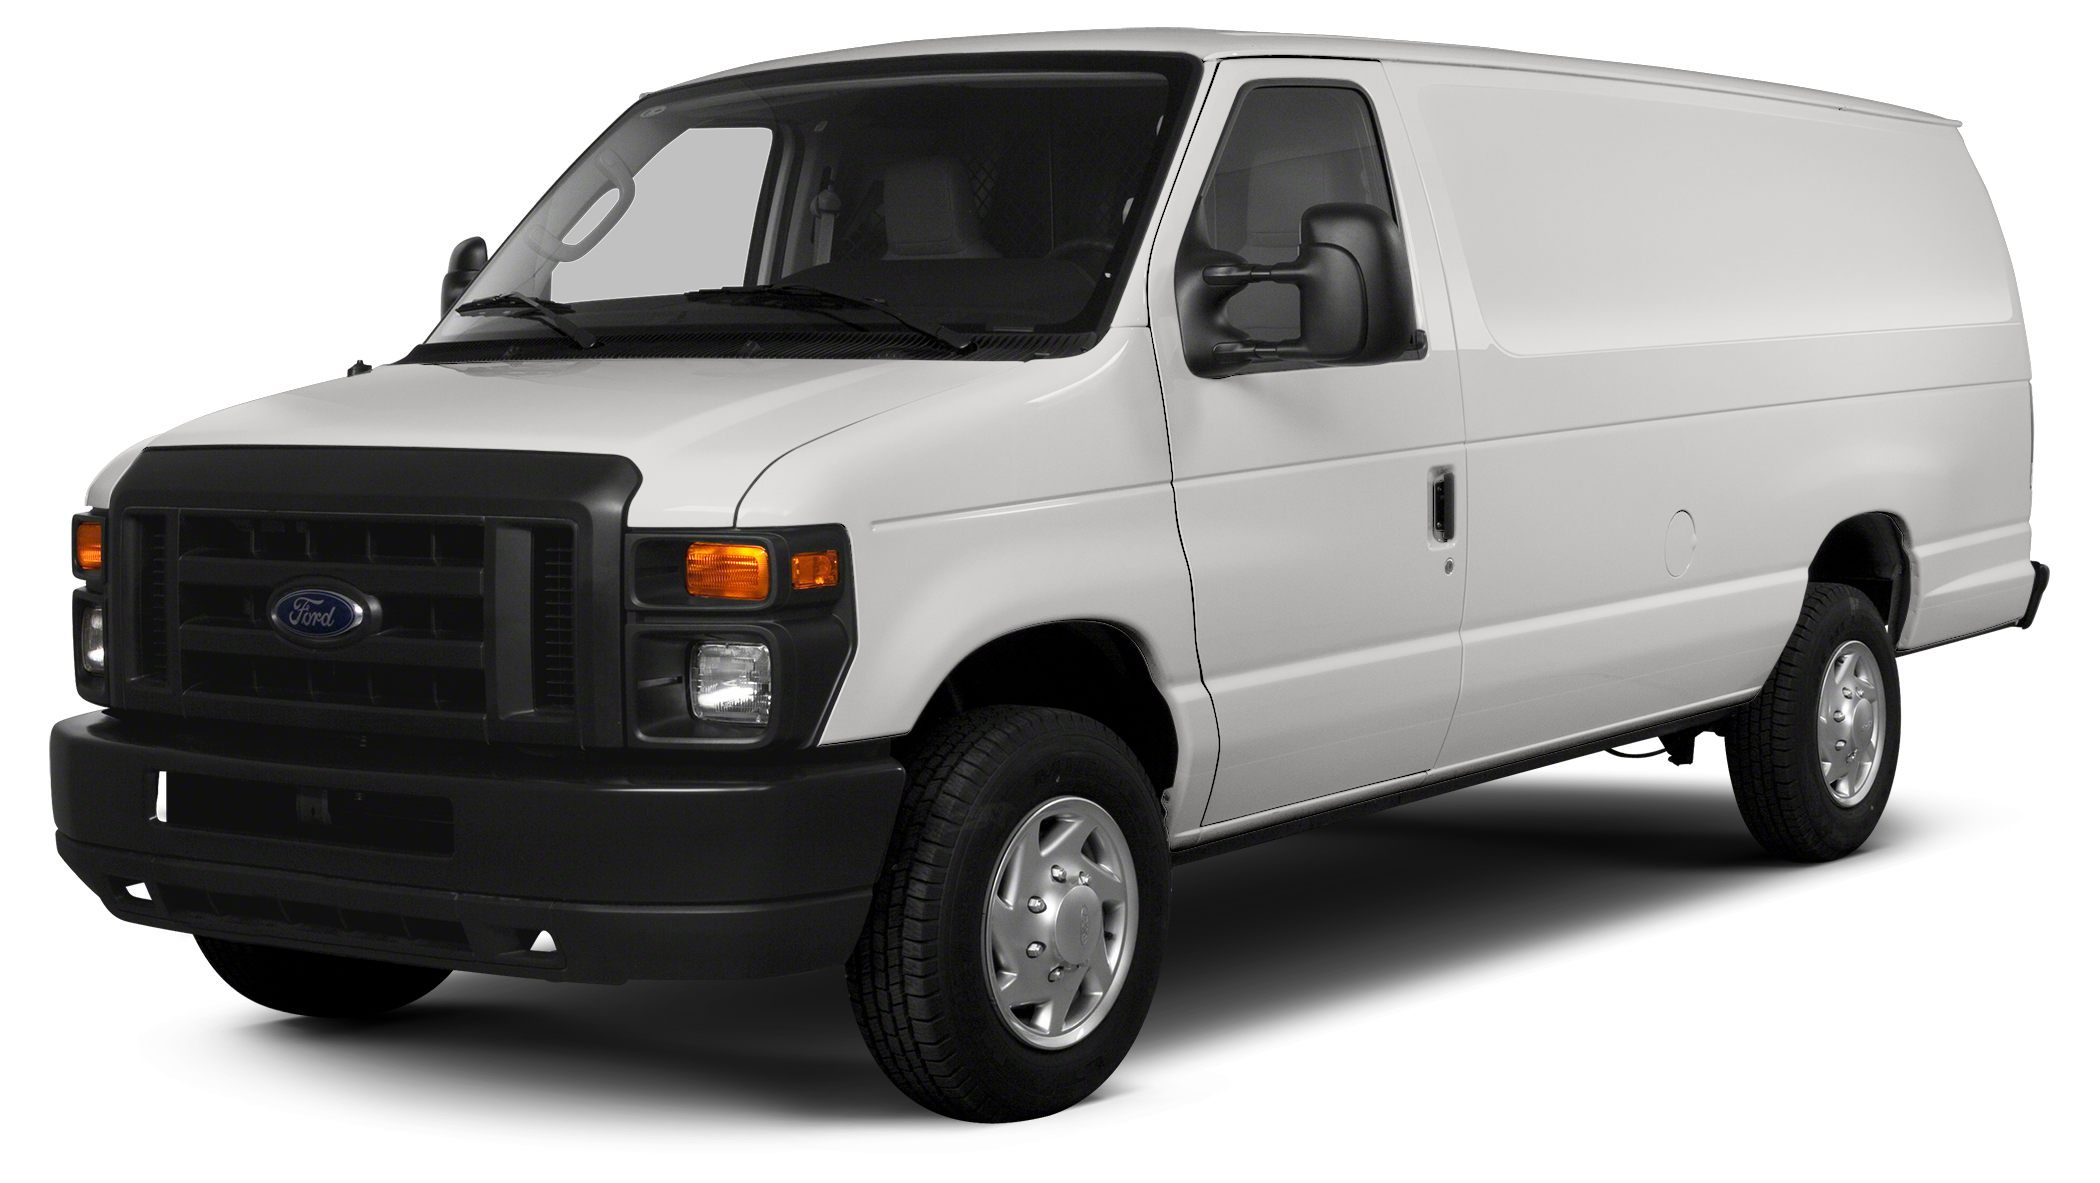 2013 Ford Econoline 150  For questions or information on this vehicle call Teresa in the Internet